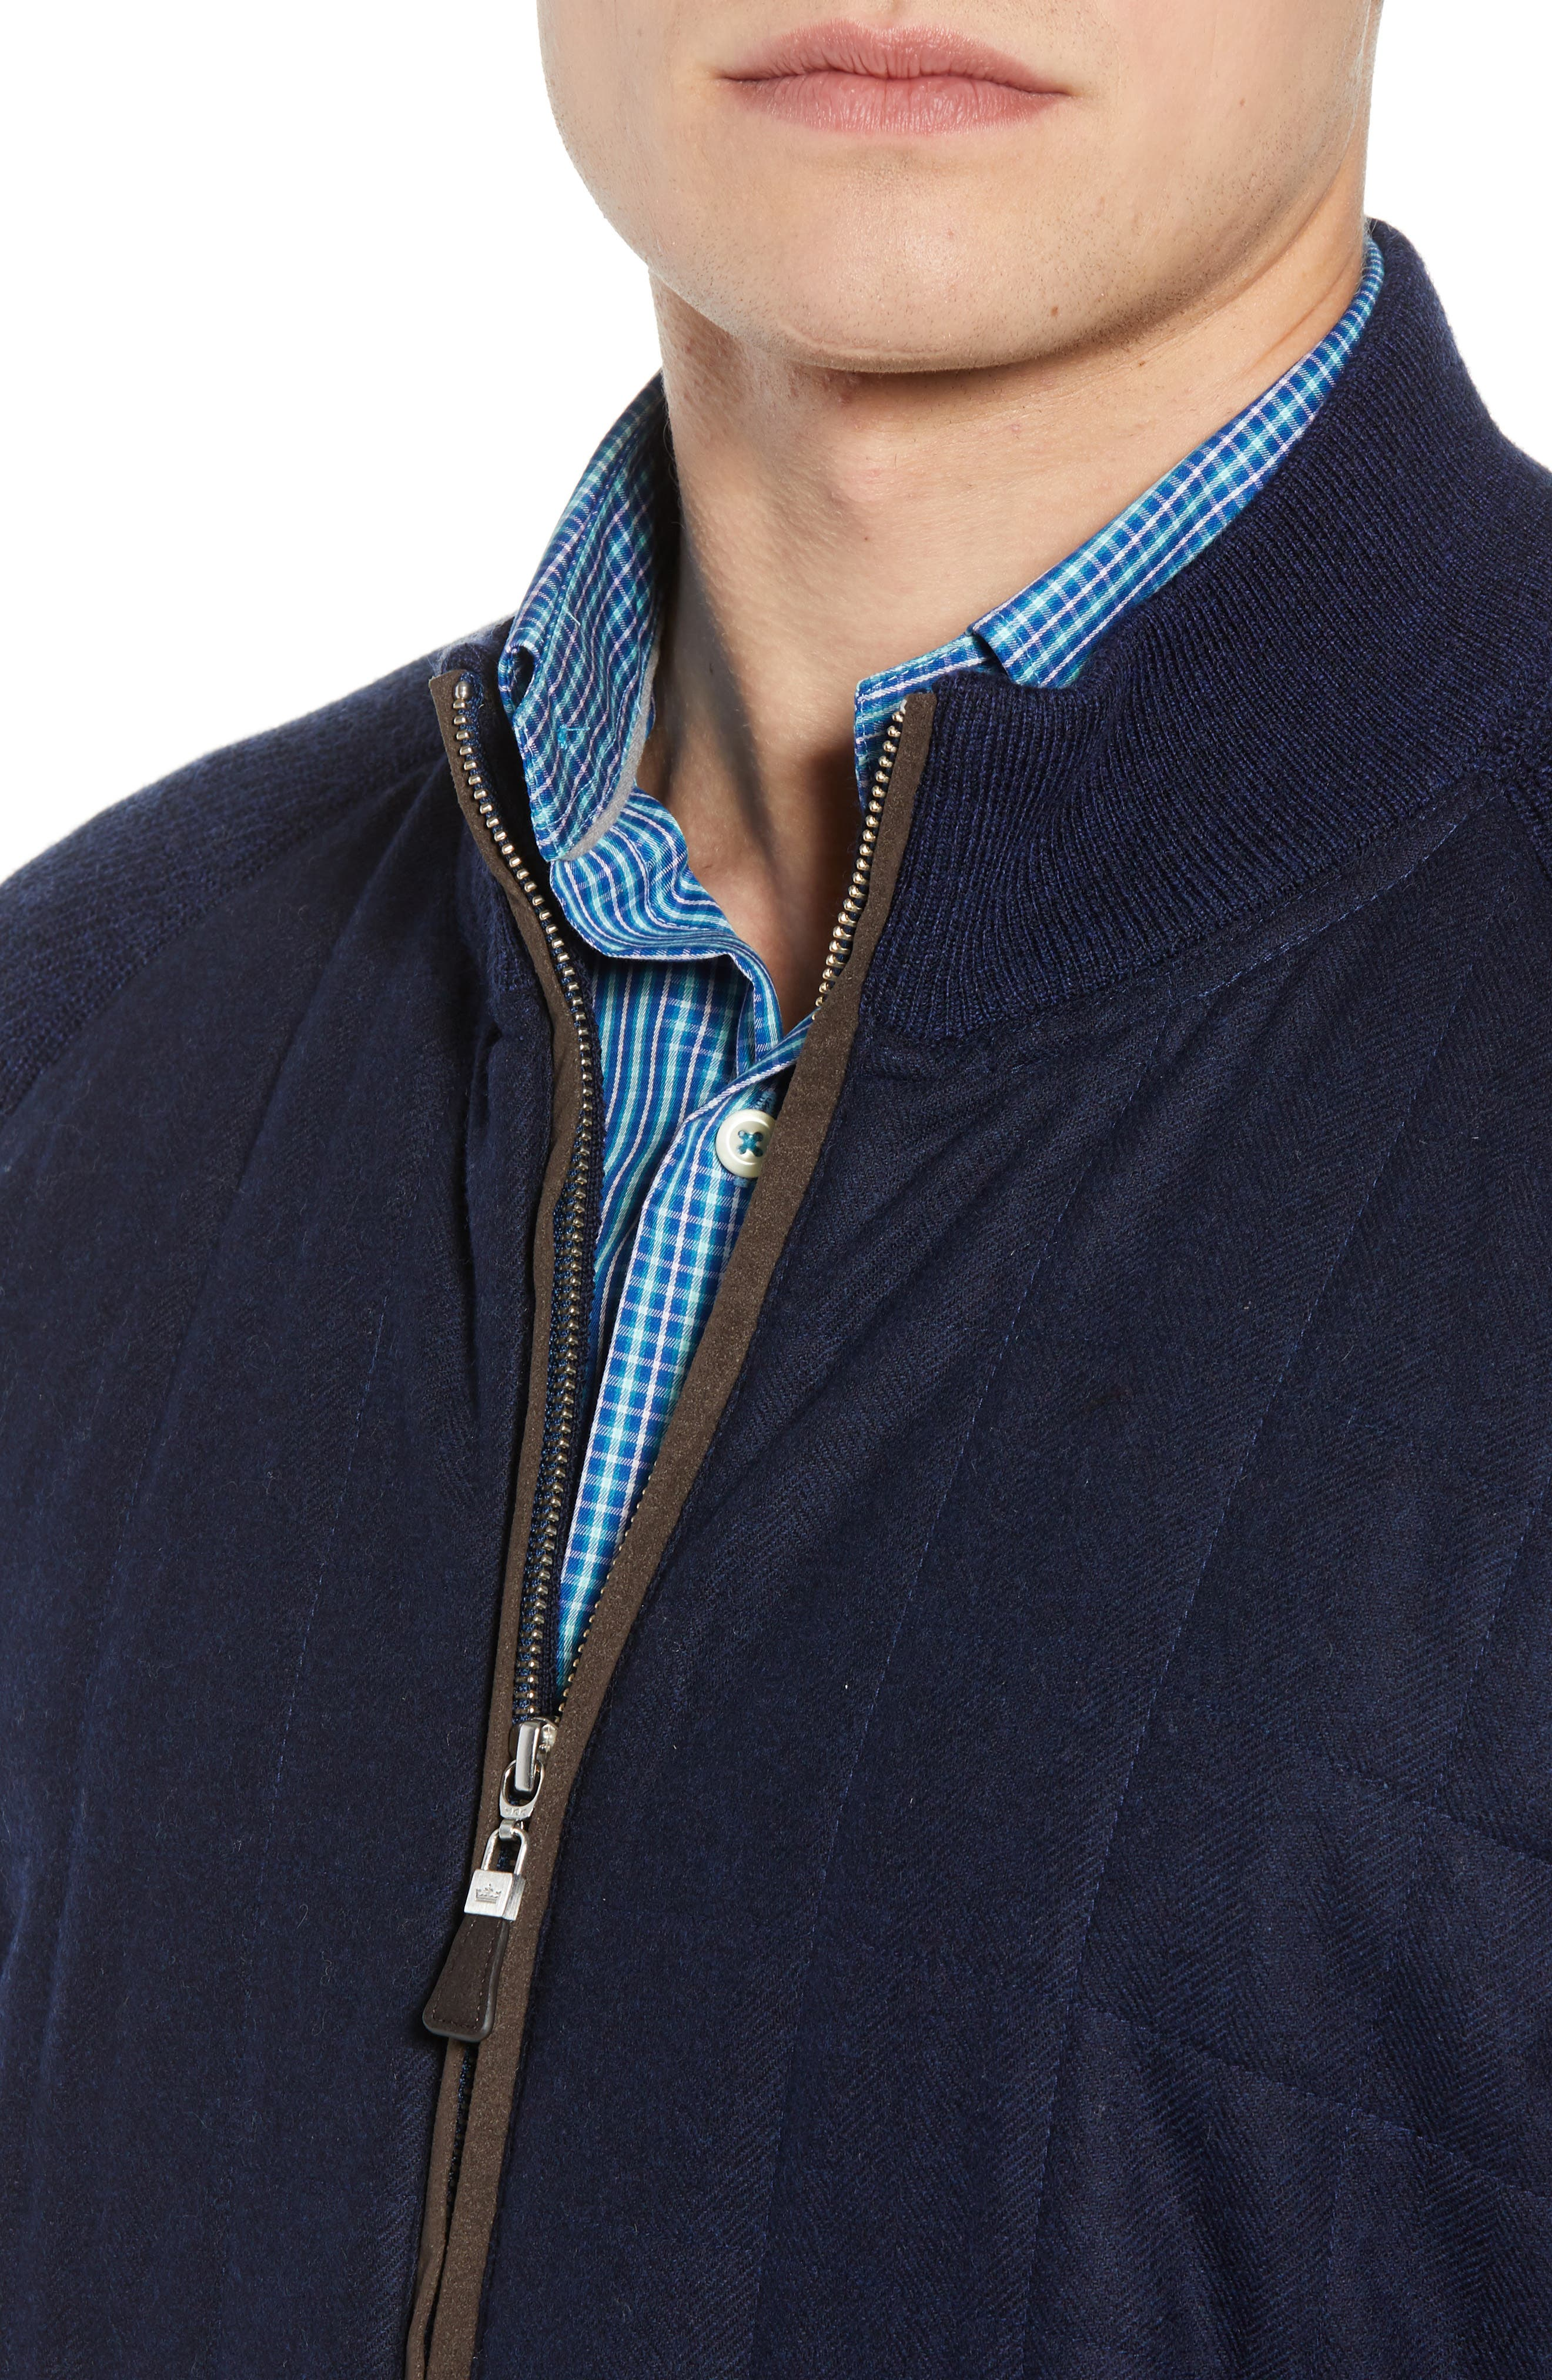 Quilted Zip Jacket,                             Alternate thumbnail 4, color,                             410